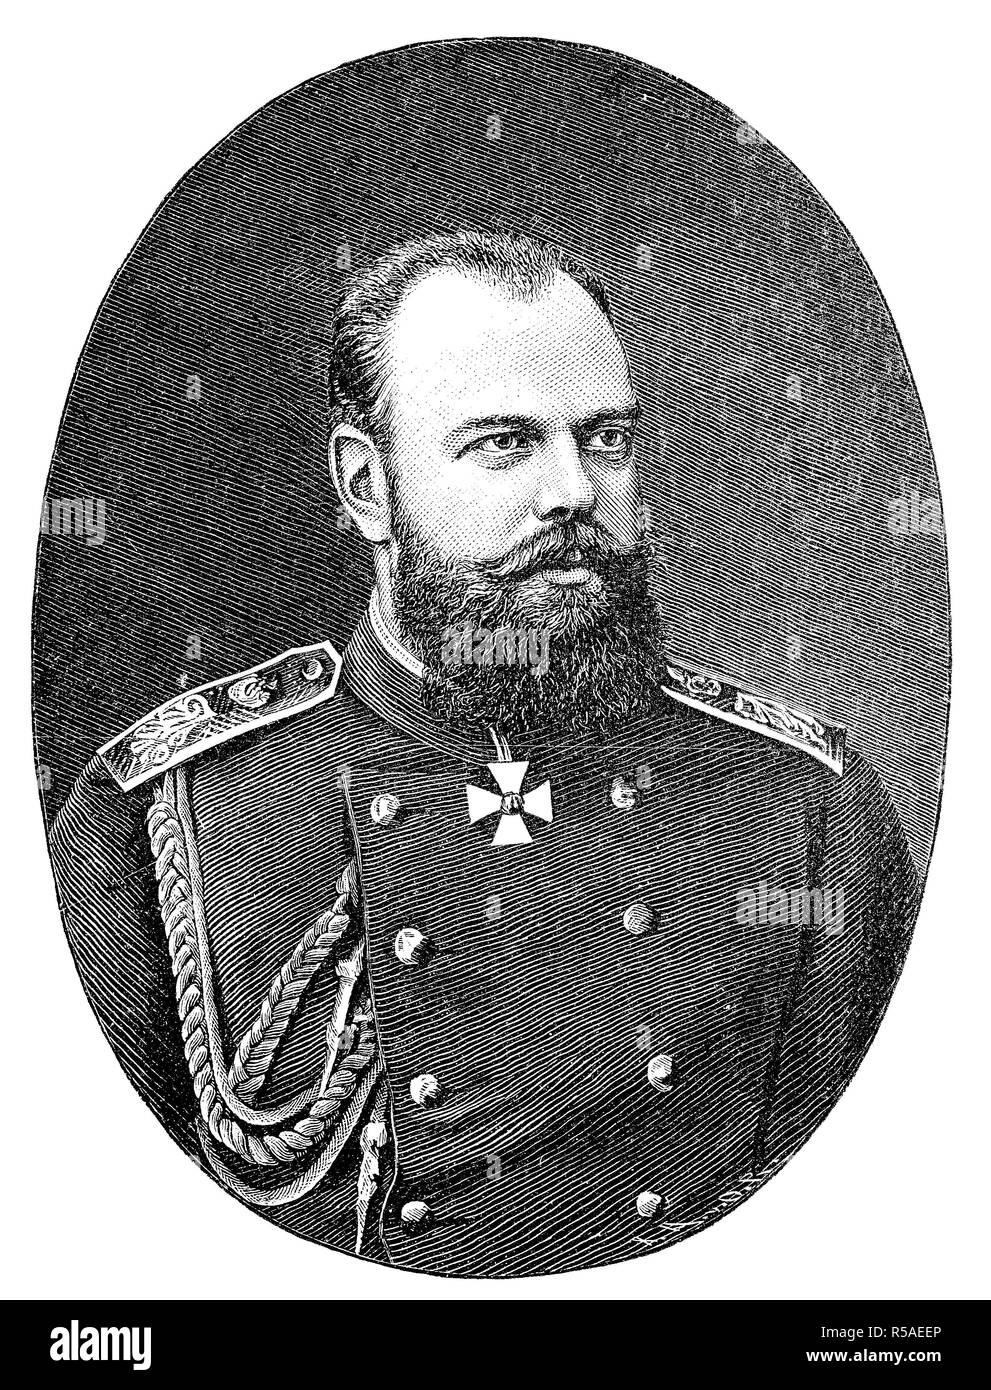 Alexander III, March 10, 1845, November 1, emperor of Russia, woodcut, Russia - Stock Image